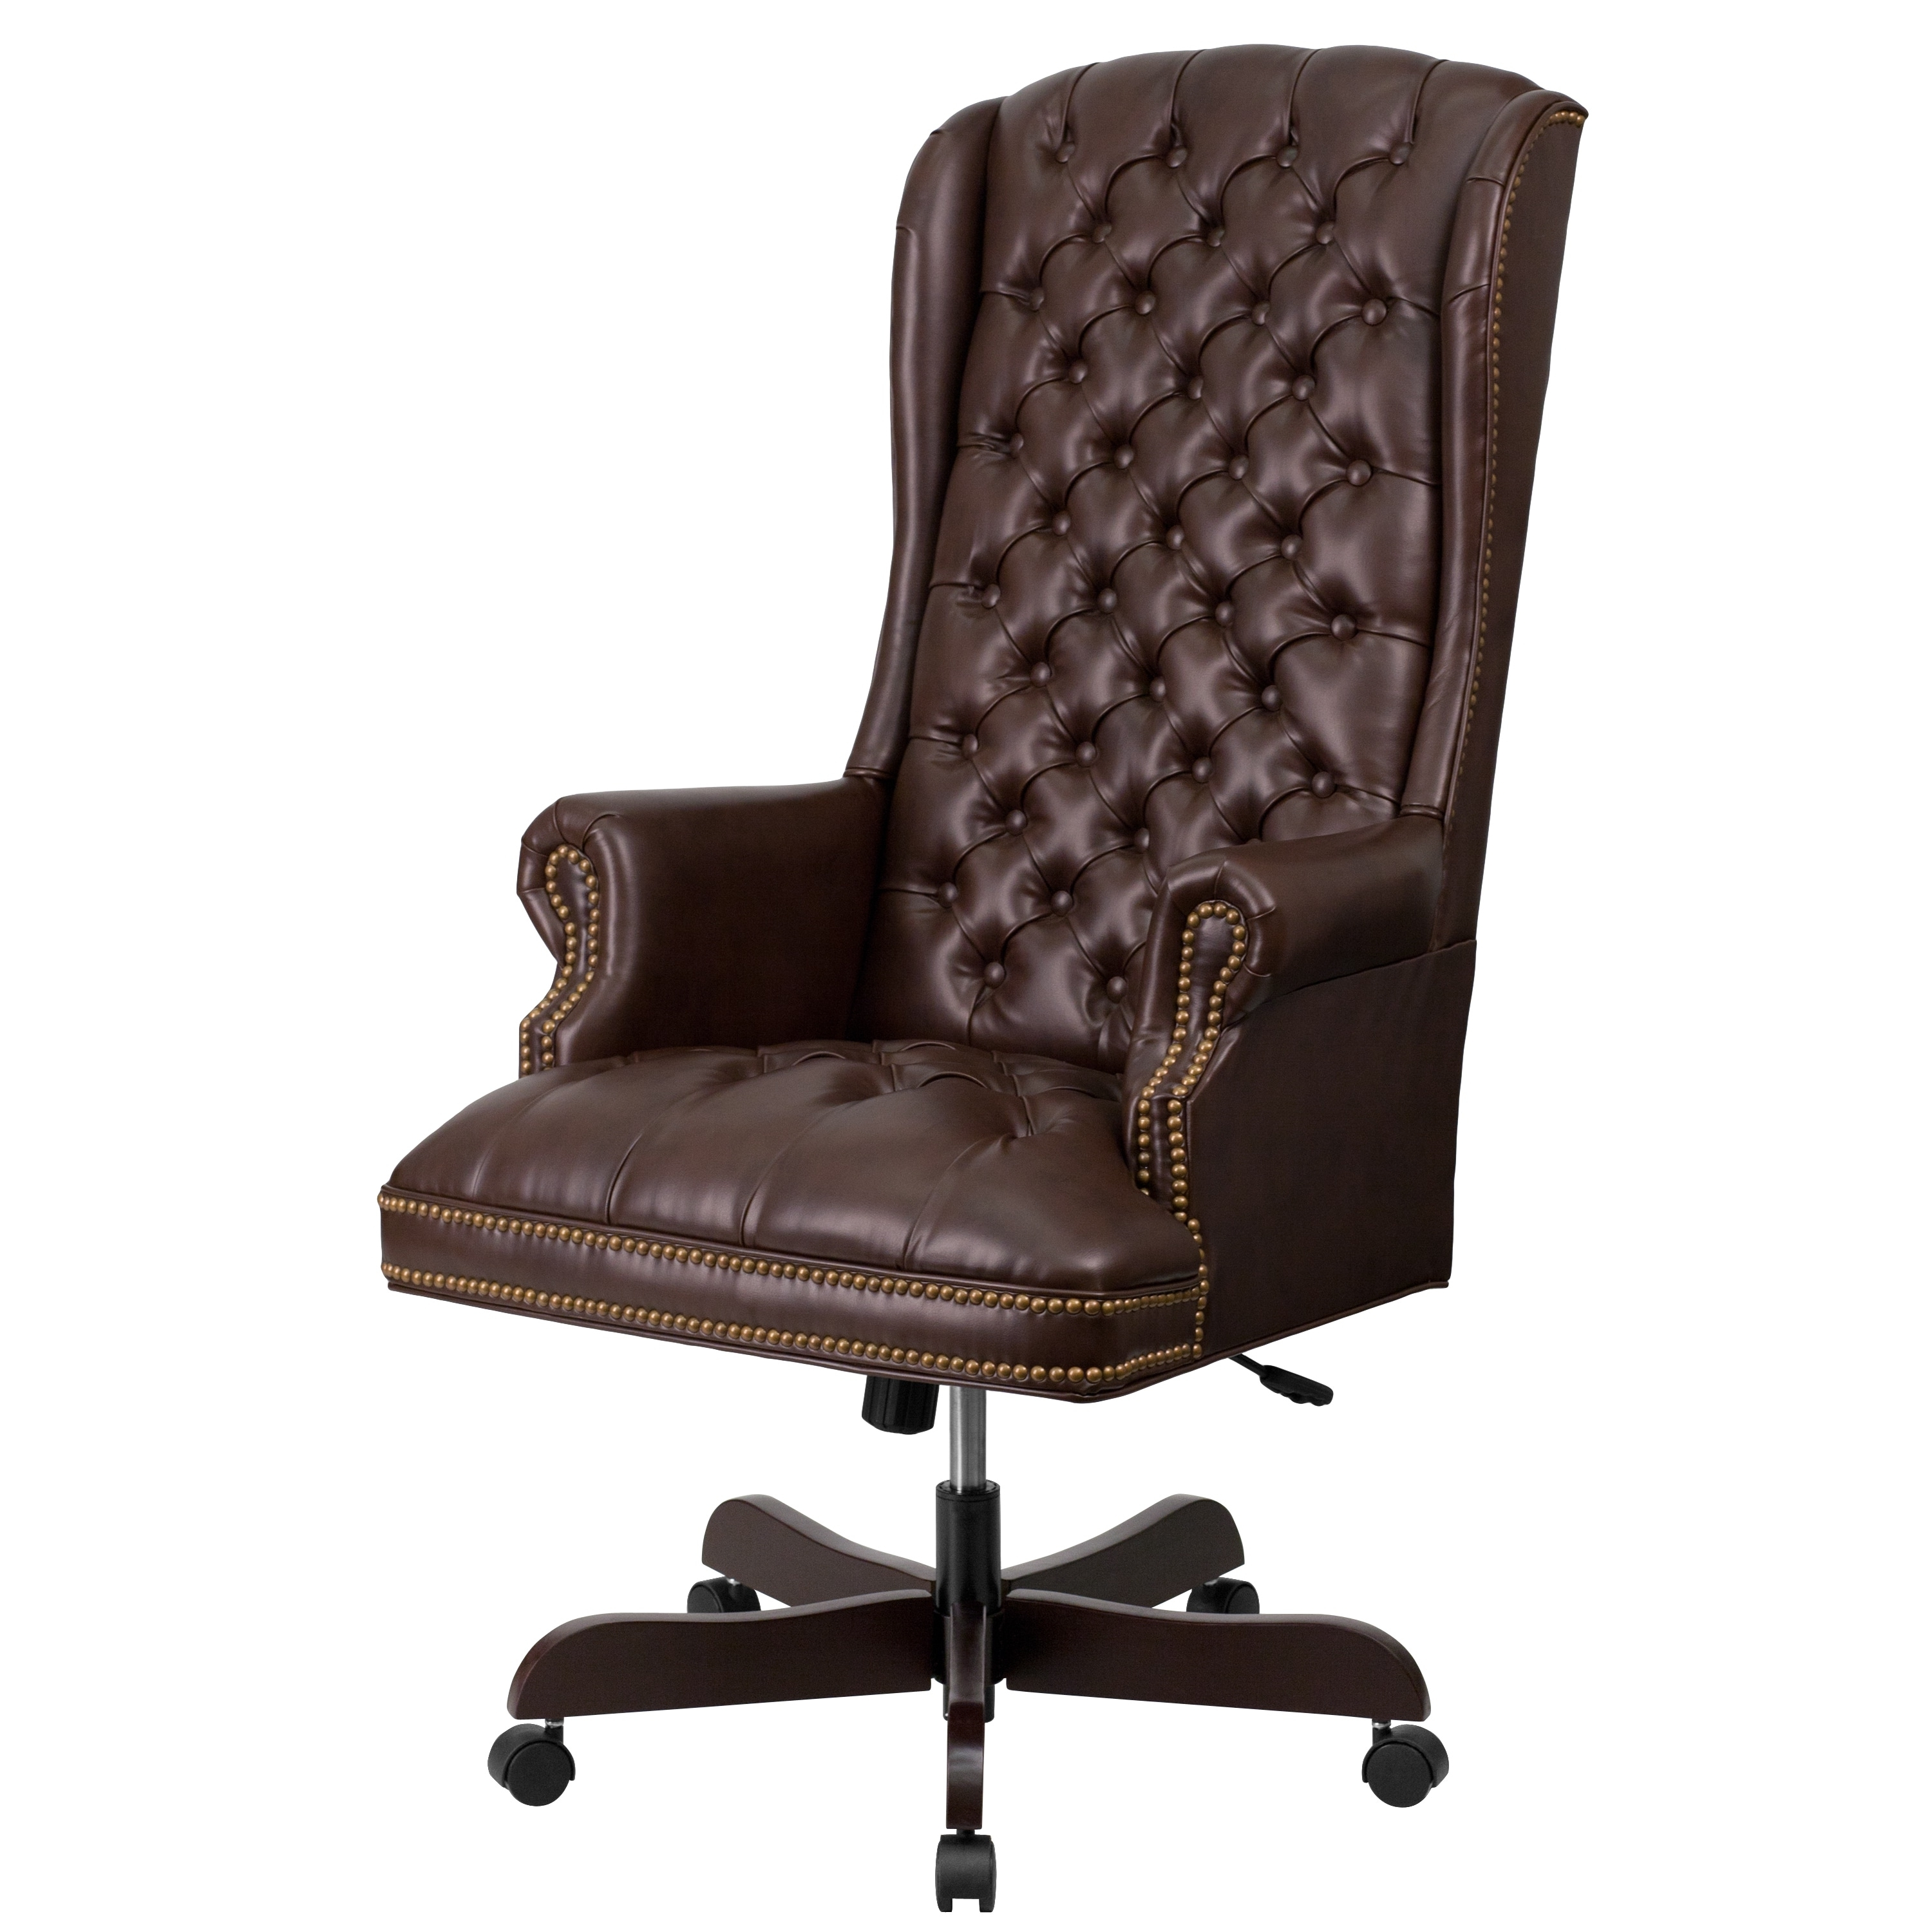 2019 Executive Office Side Chairs Throughout Brown Office & Conference Room Chairs For Less (View 15 of 20)